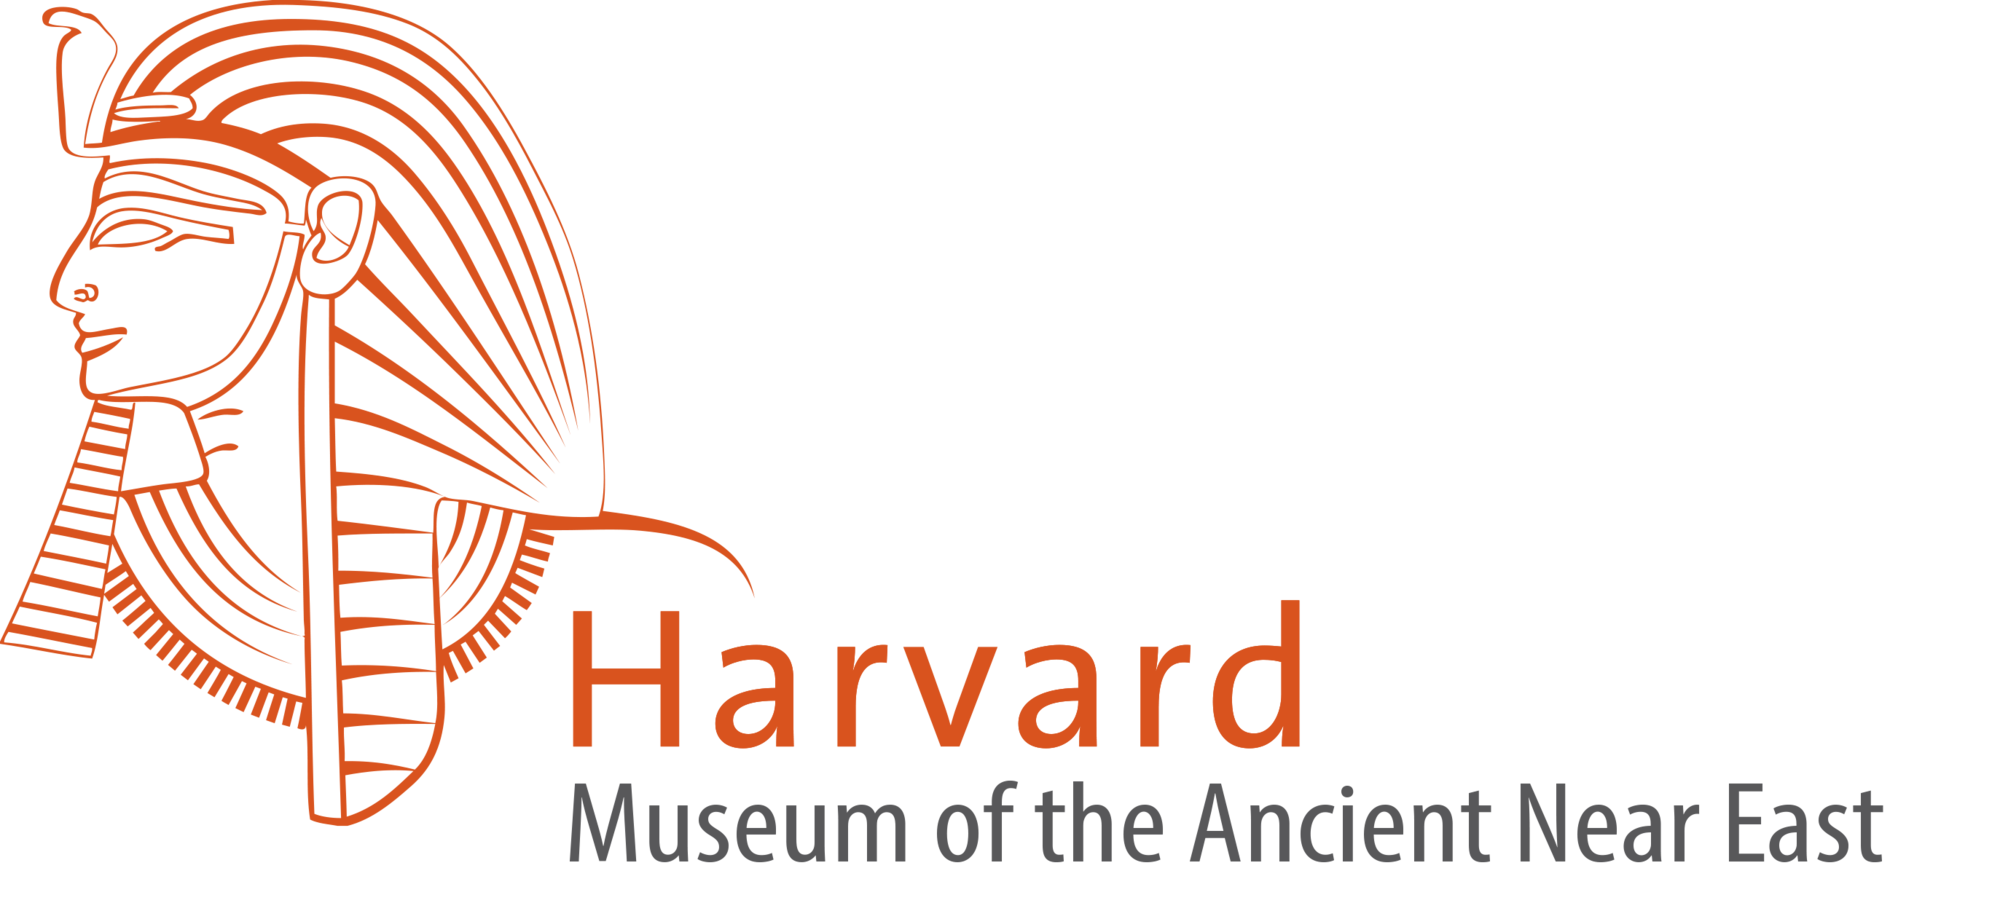 Harvard Museum of the Ancient Near East logo of line drawing of Ancient Egyptian royalty